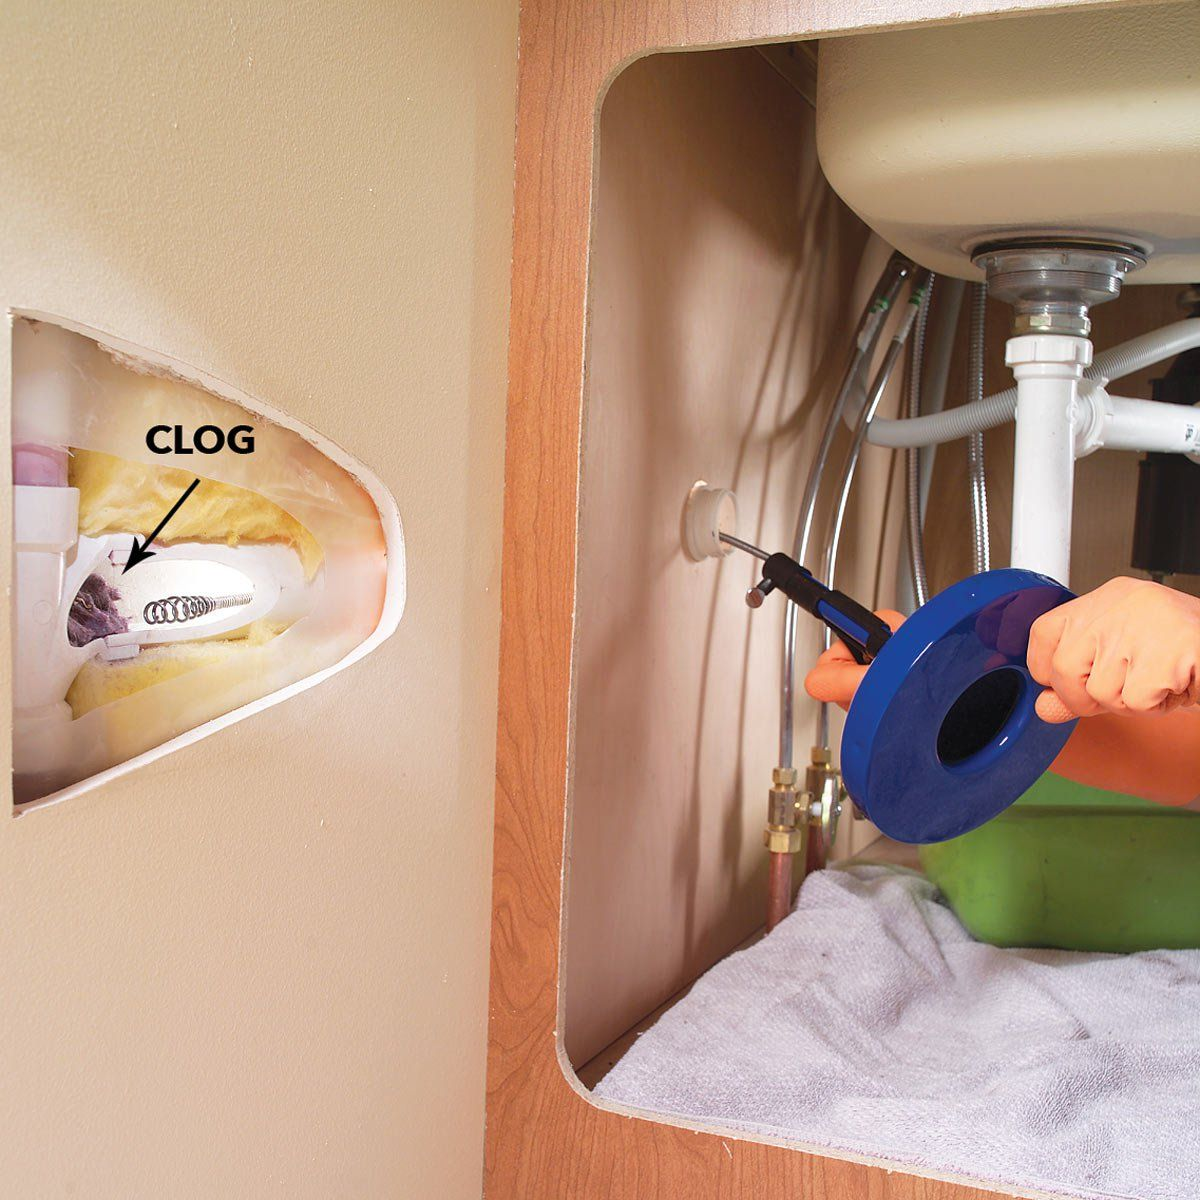 How to Unclog a Sink Unclog, Sink drain, Clogged drain